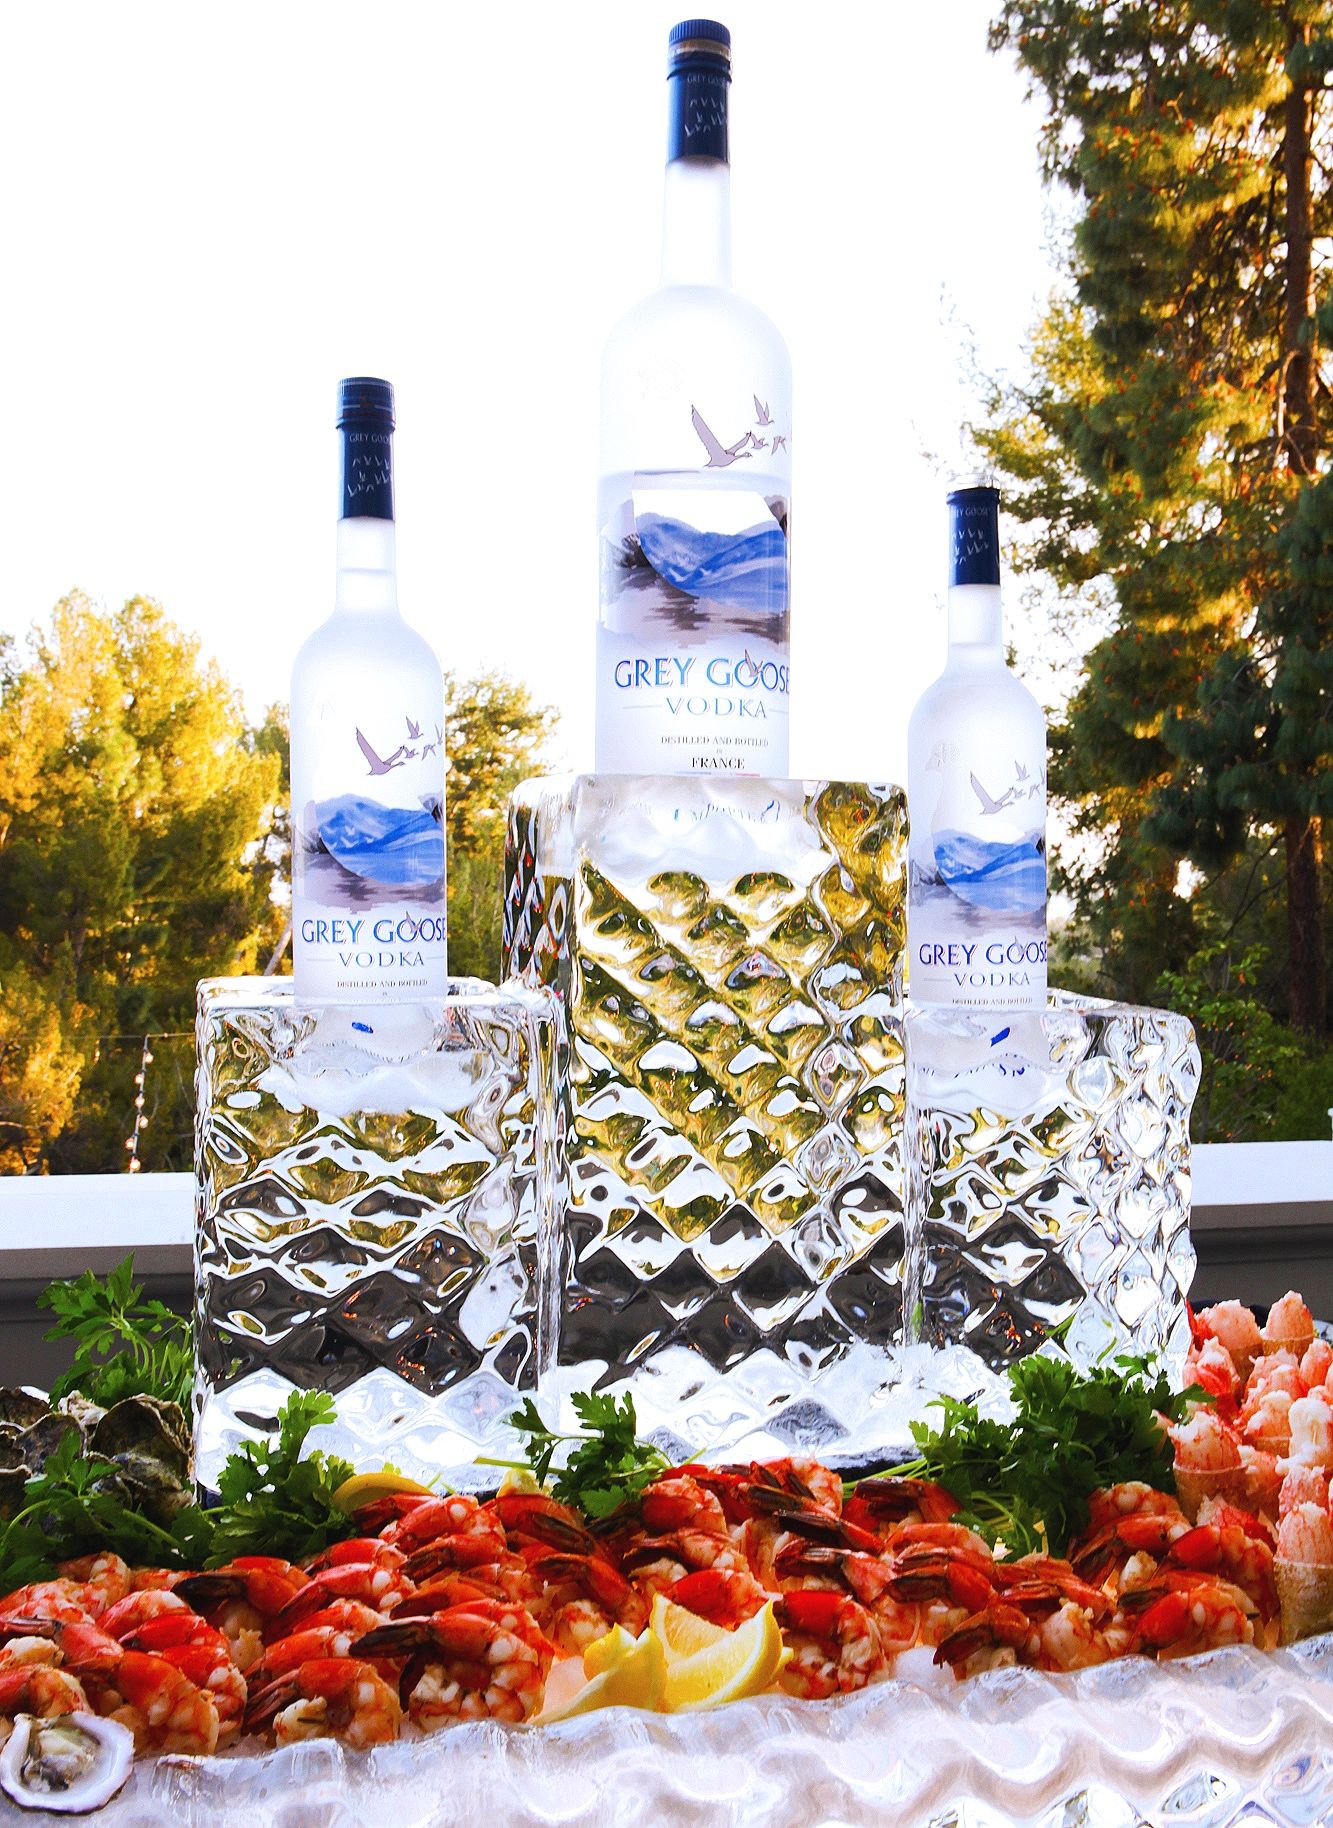 Seafood and Grey Goose vodka display